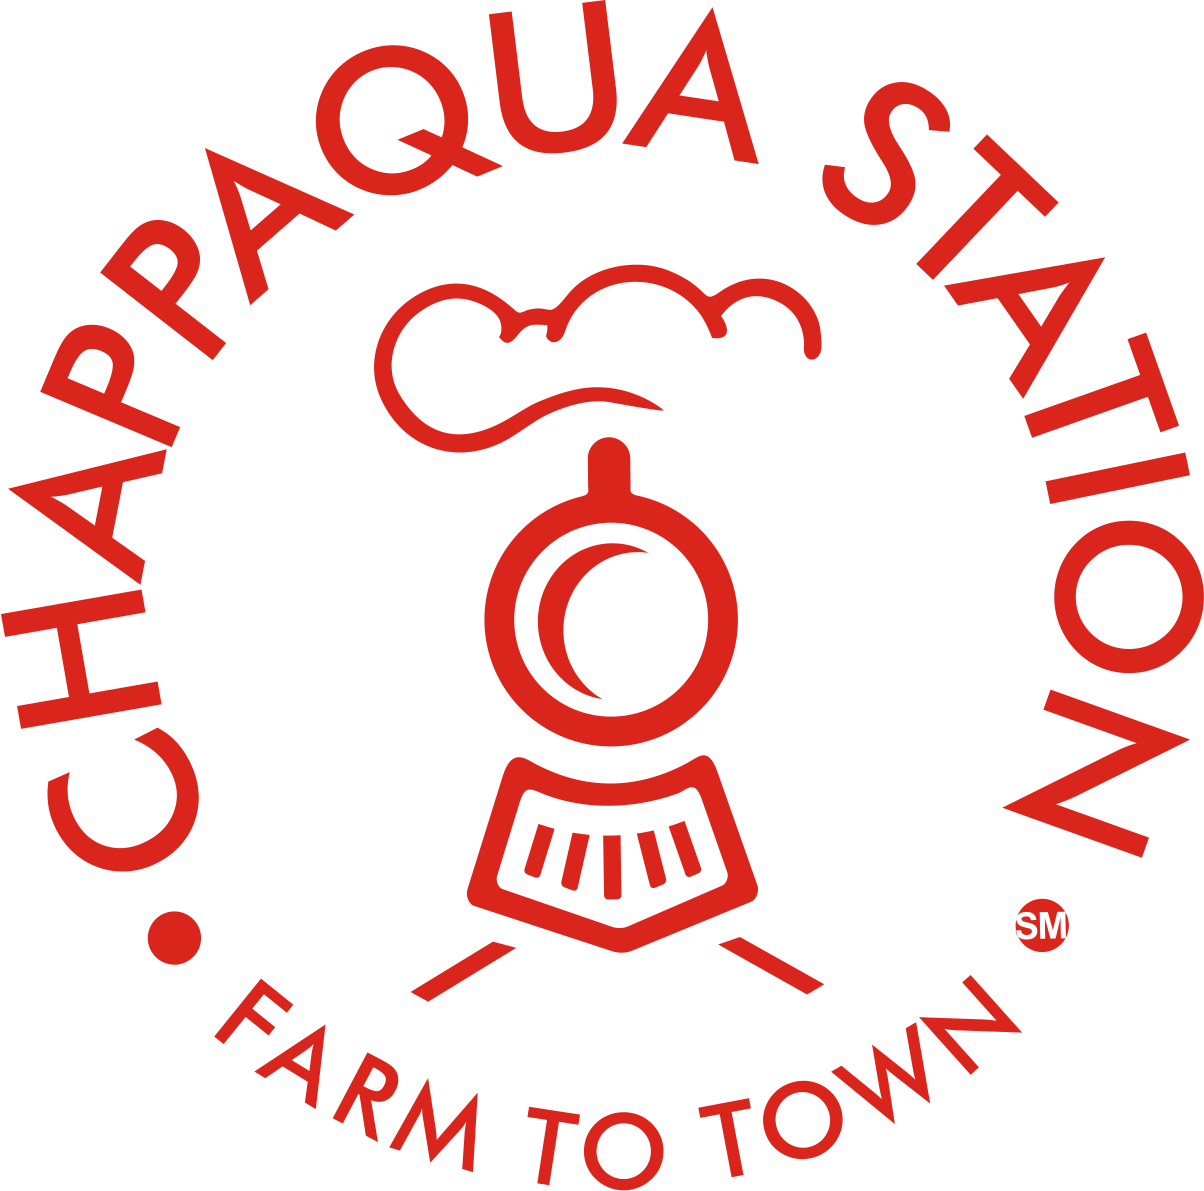 CHAPPAQUA STATION